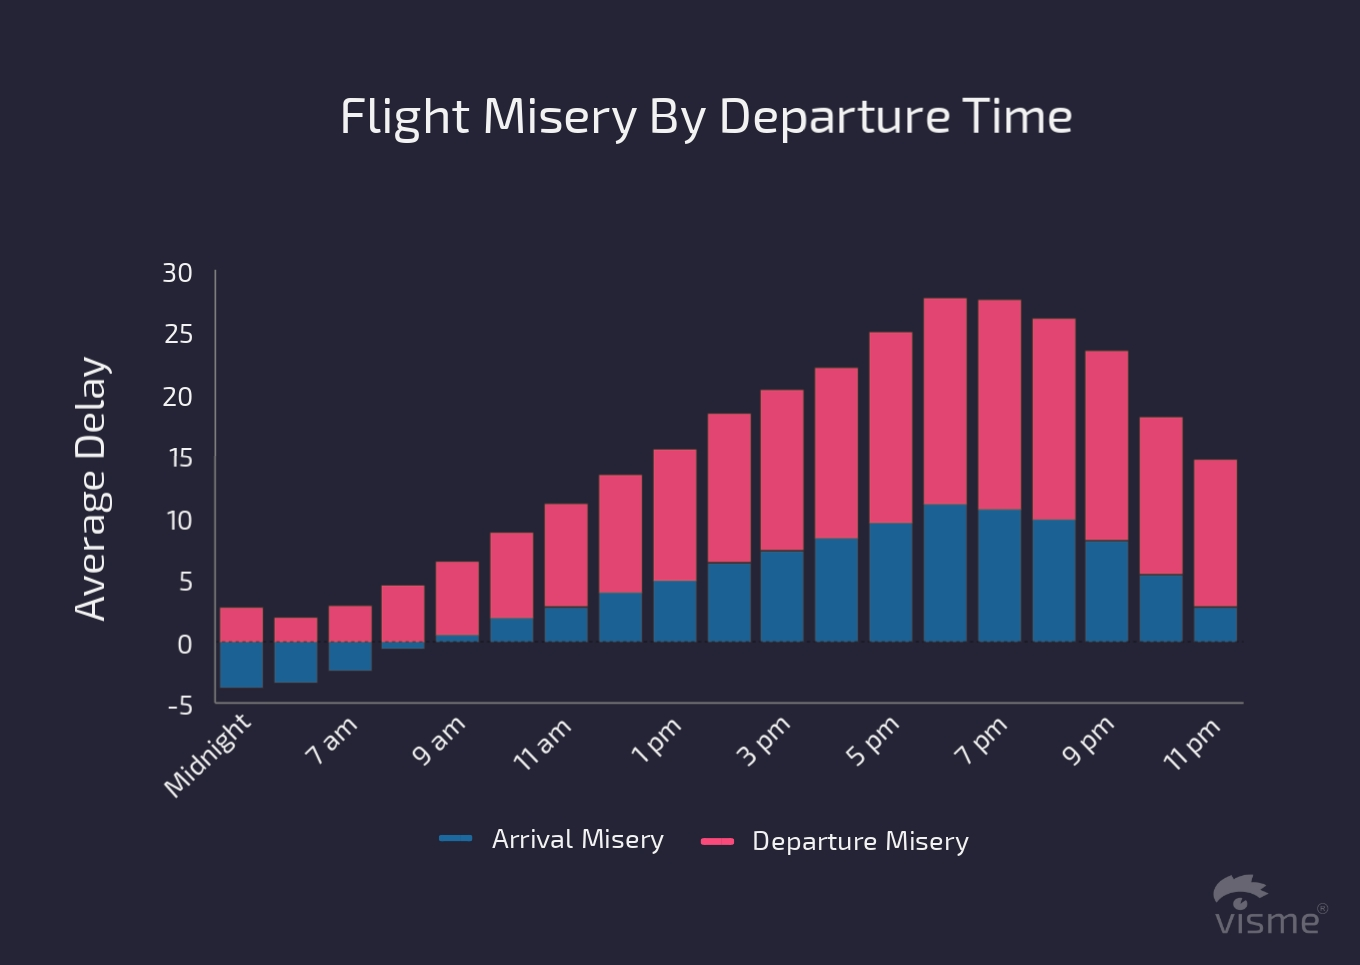 17 Charts on the State of the U.S. Airline Industry in 2017 flight misery by departure time flight on time performance